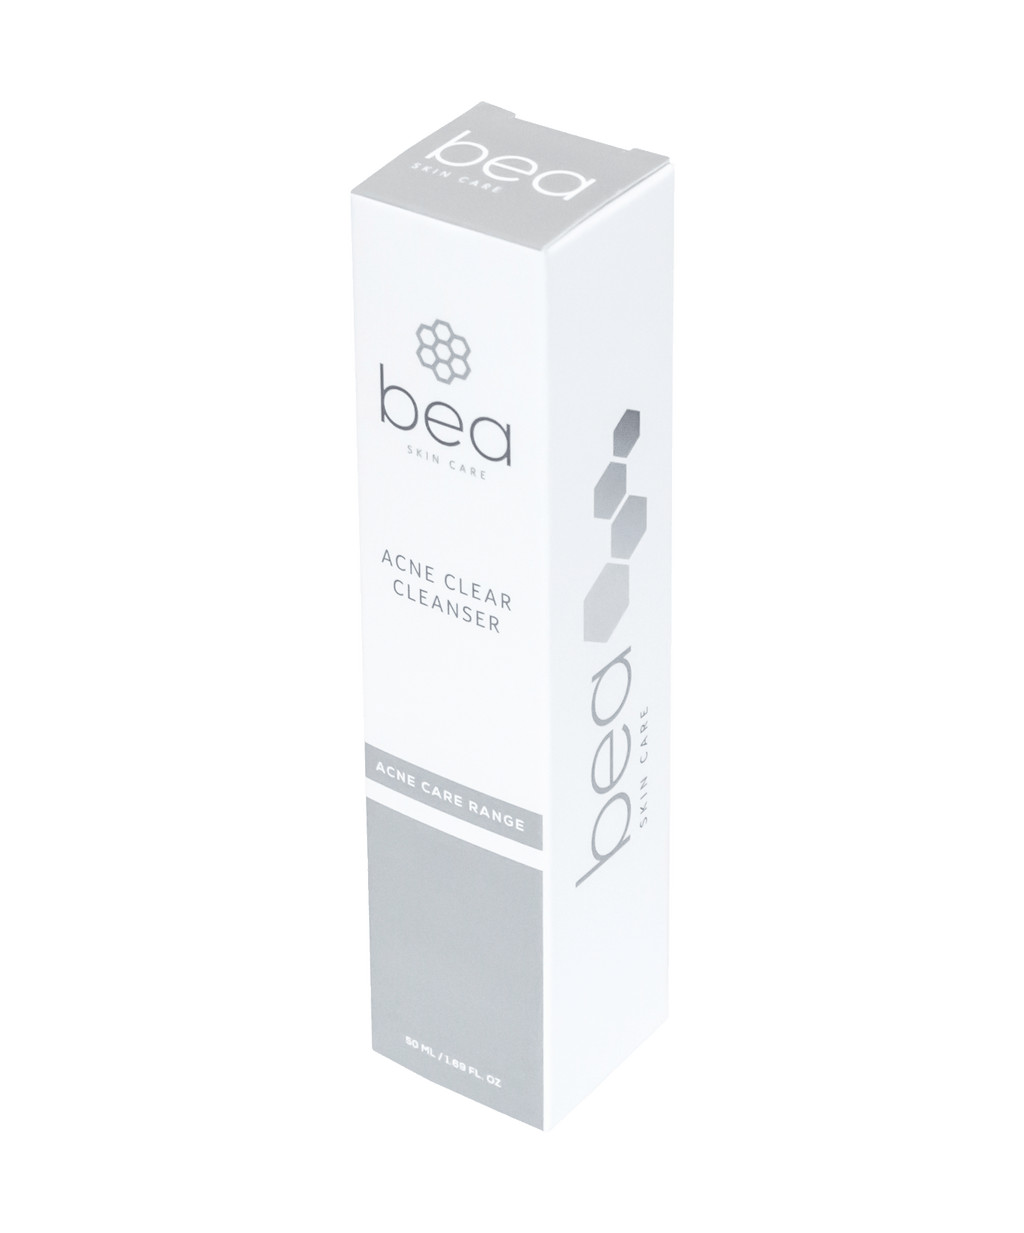 Acne Clear Cleanser - 50 ml Cleanser bea Skin Care